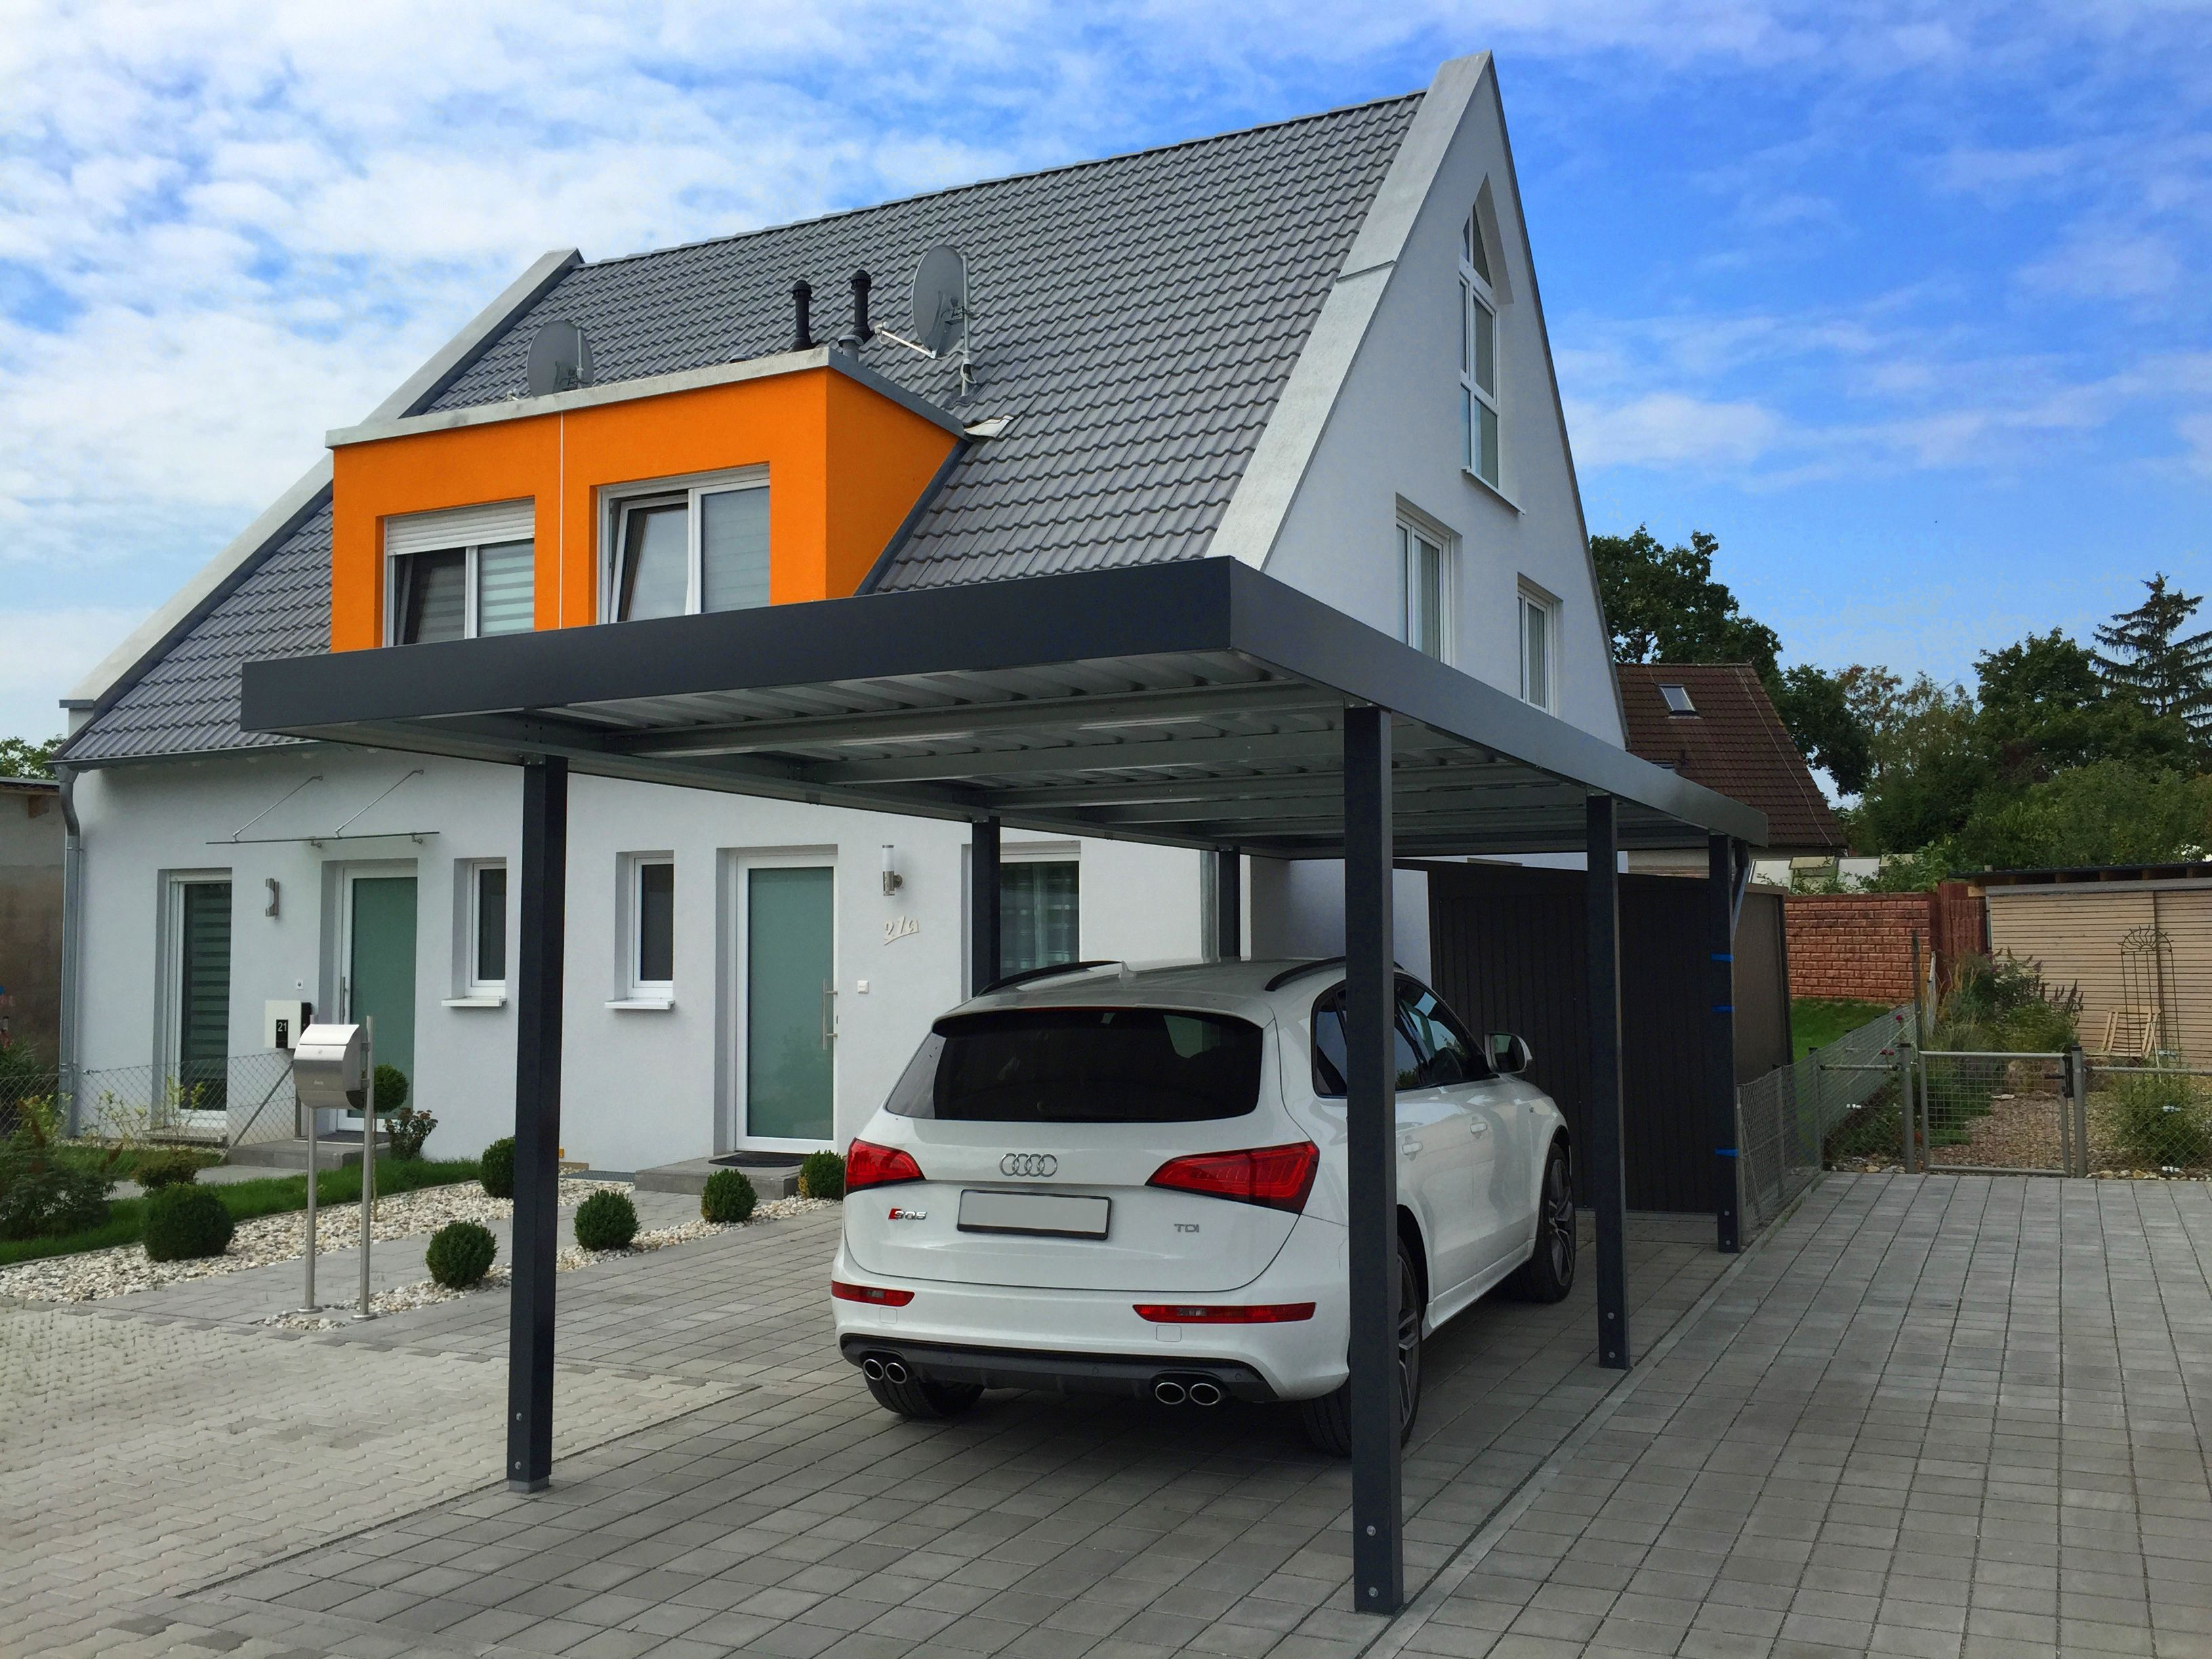 myport einzelcarport aus metall carport carports doppelcarport metallcarport. Black Bedroom Furniture Sets. Home Design Ideas